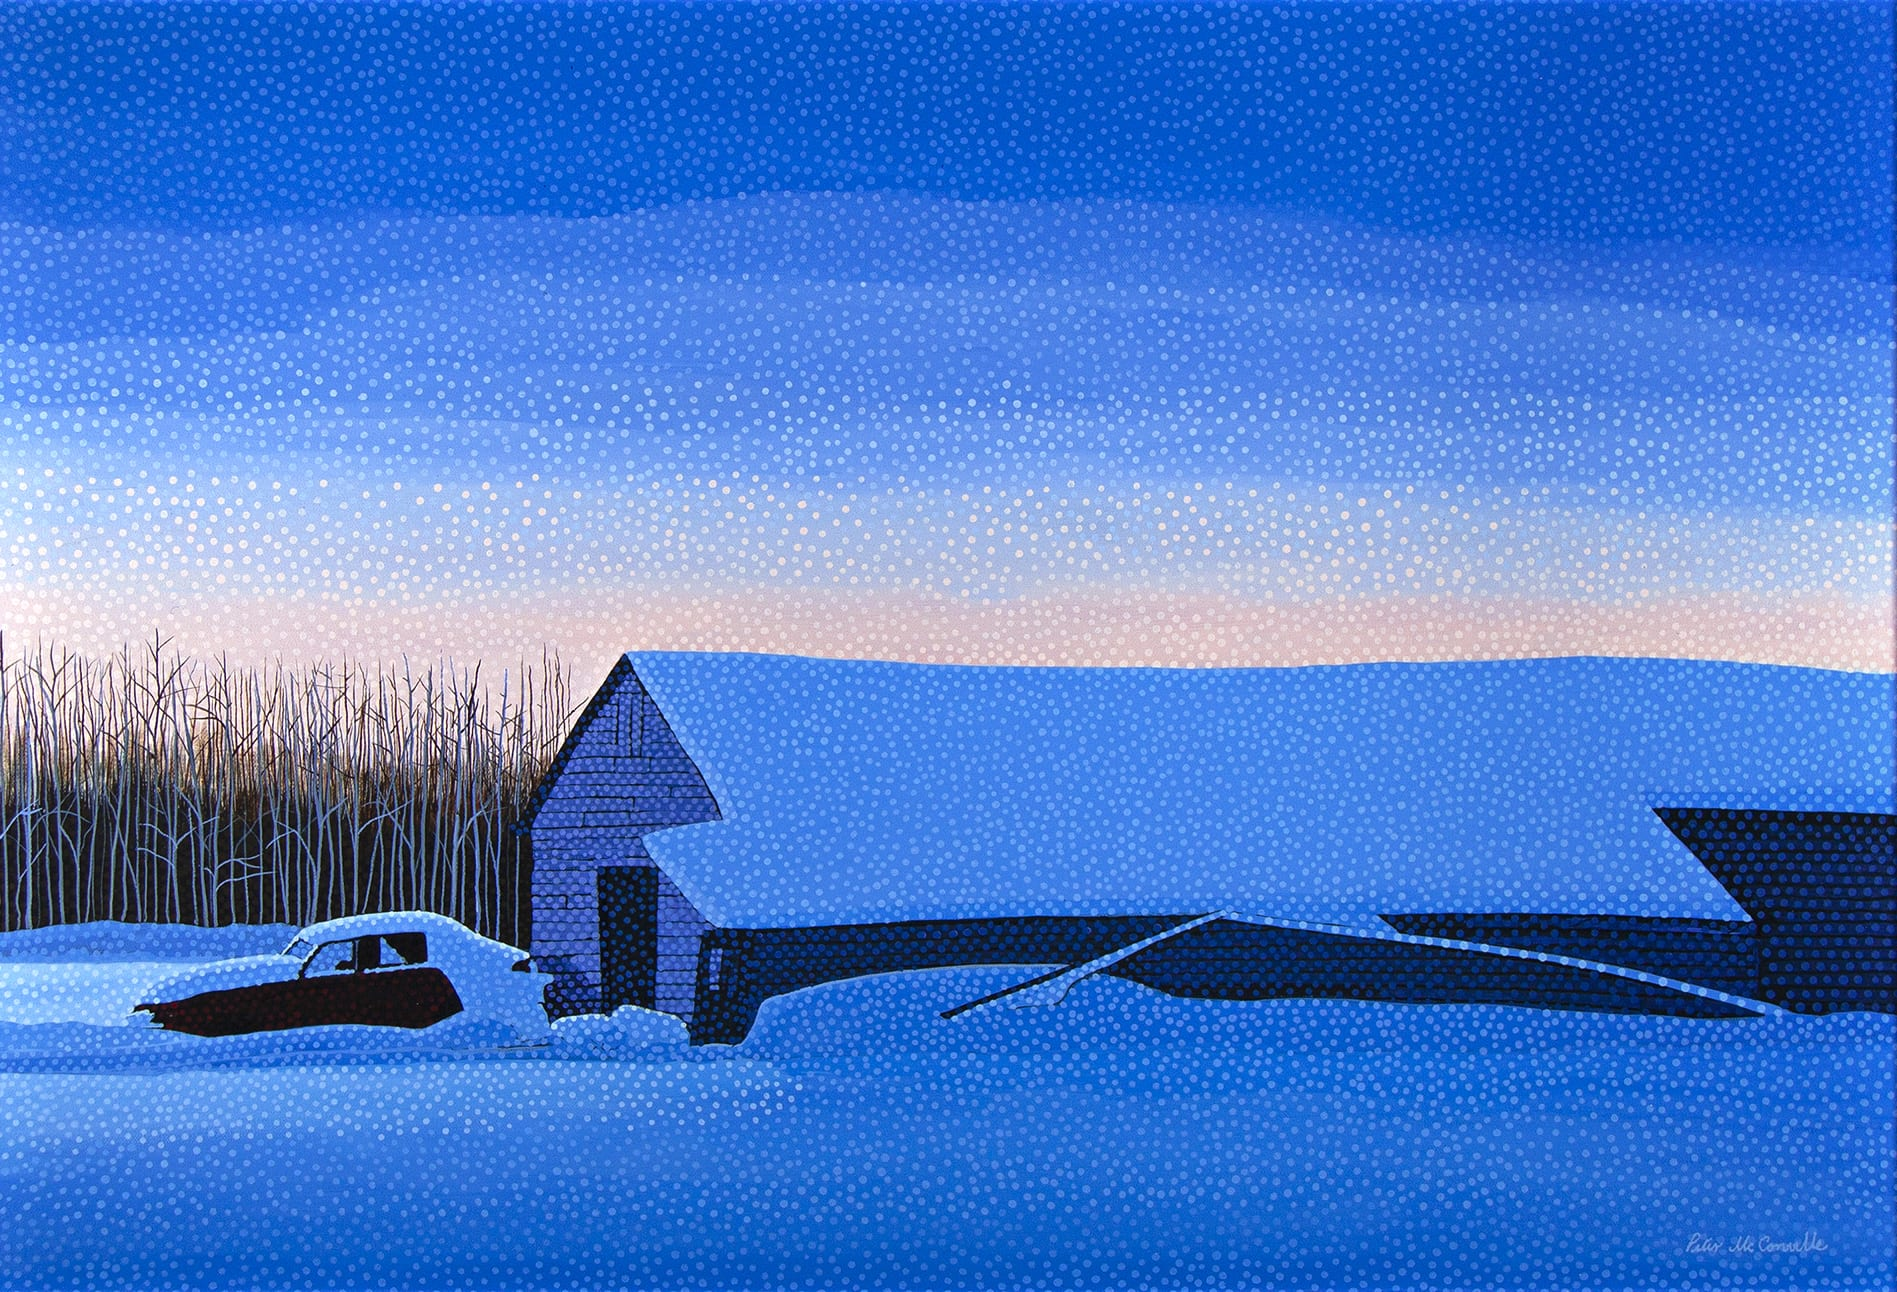 Snow Covered - Peter McConville Image 1